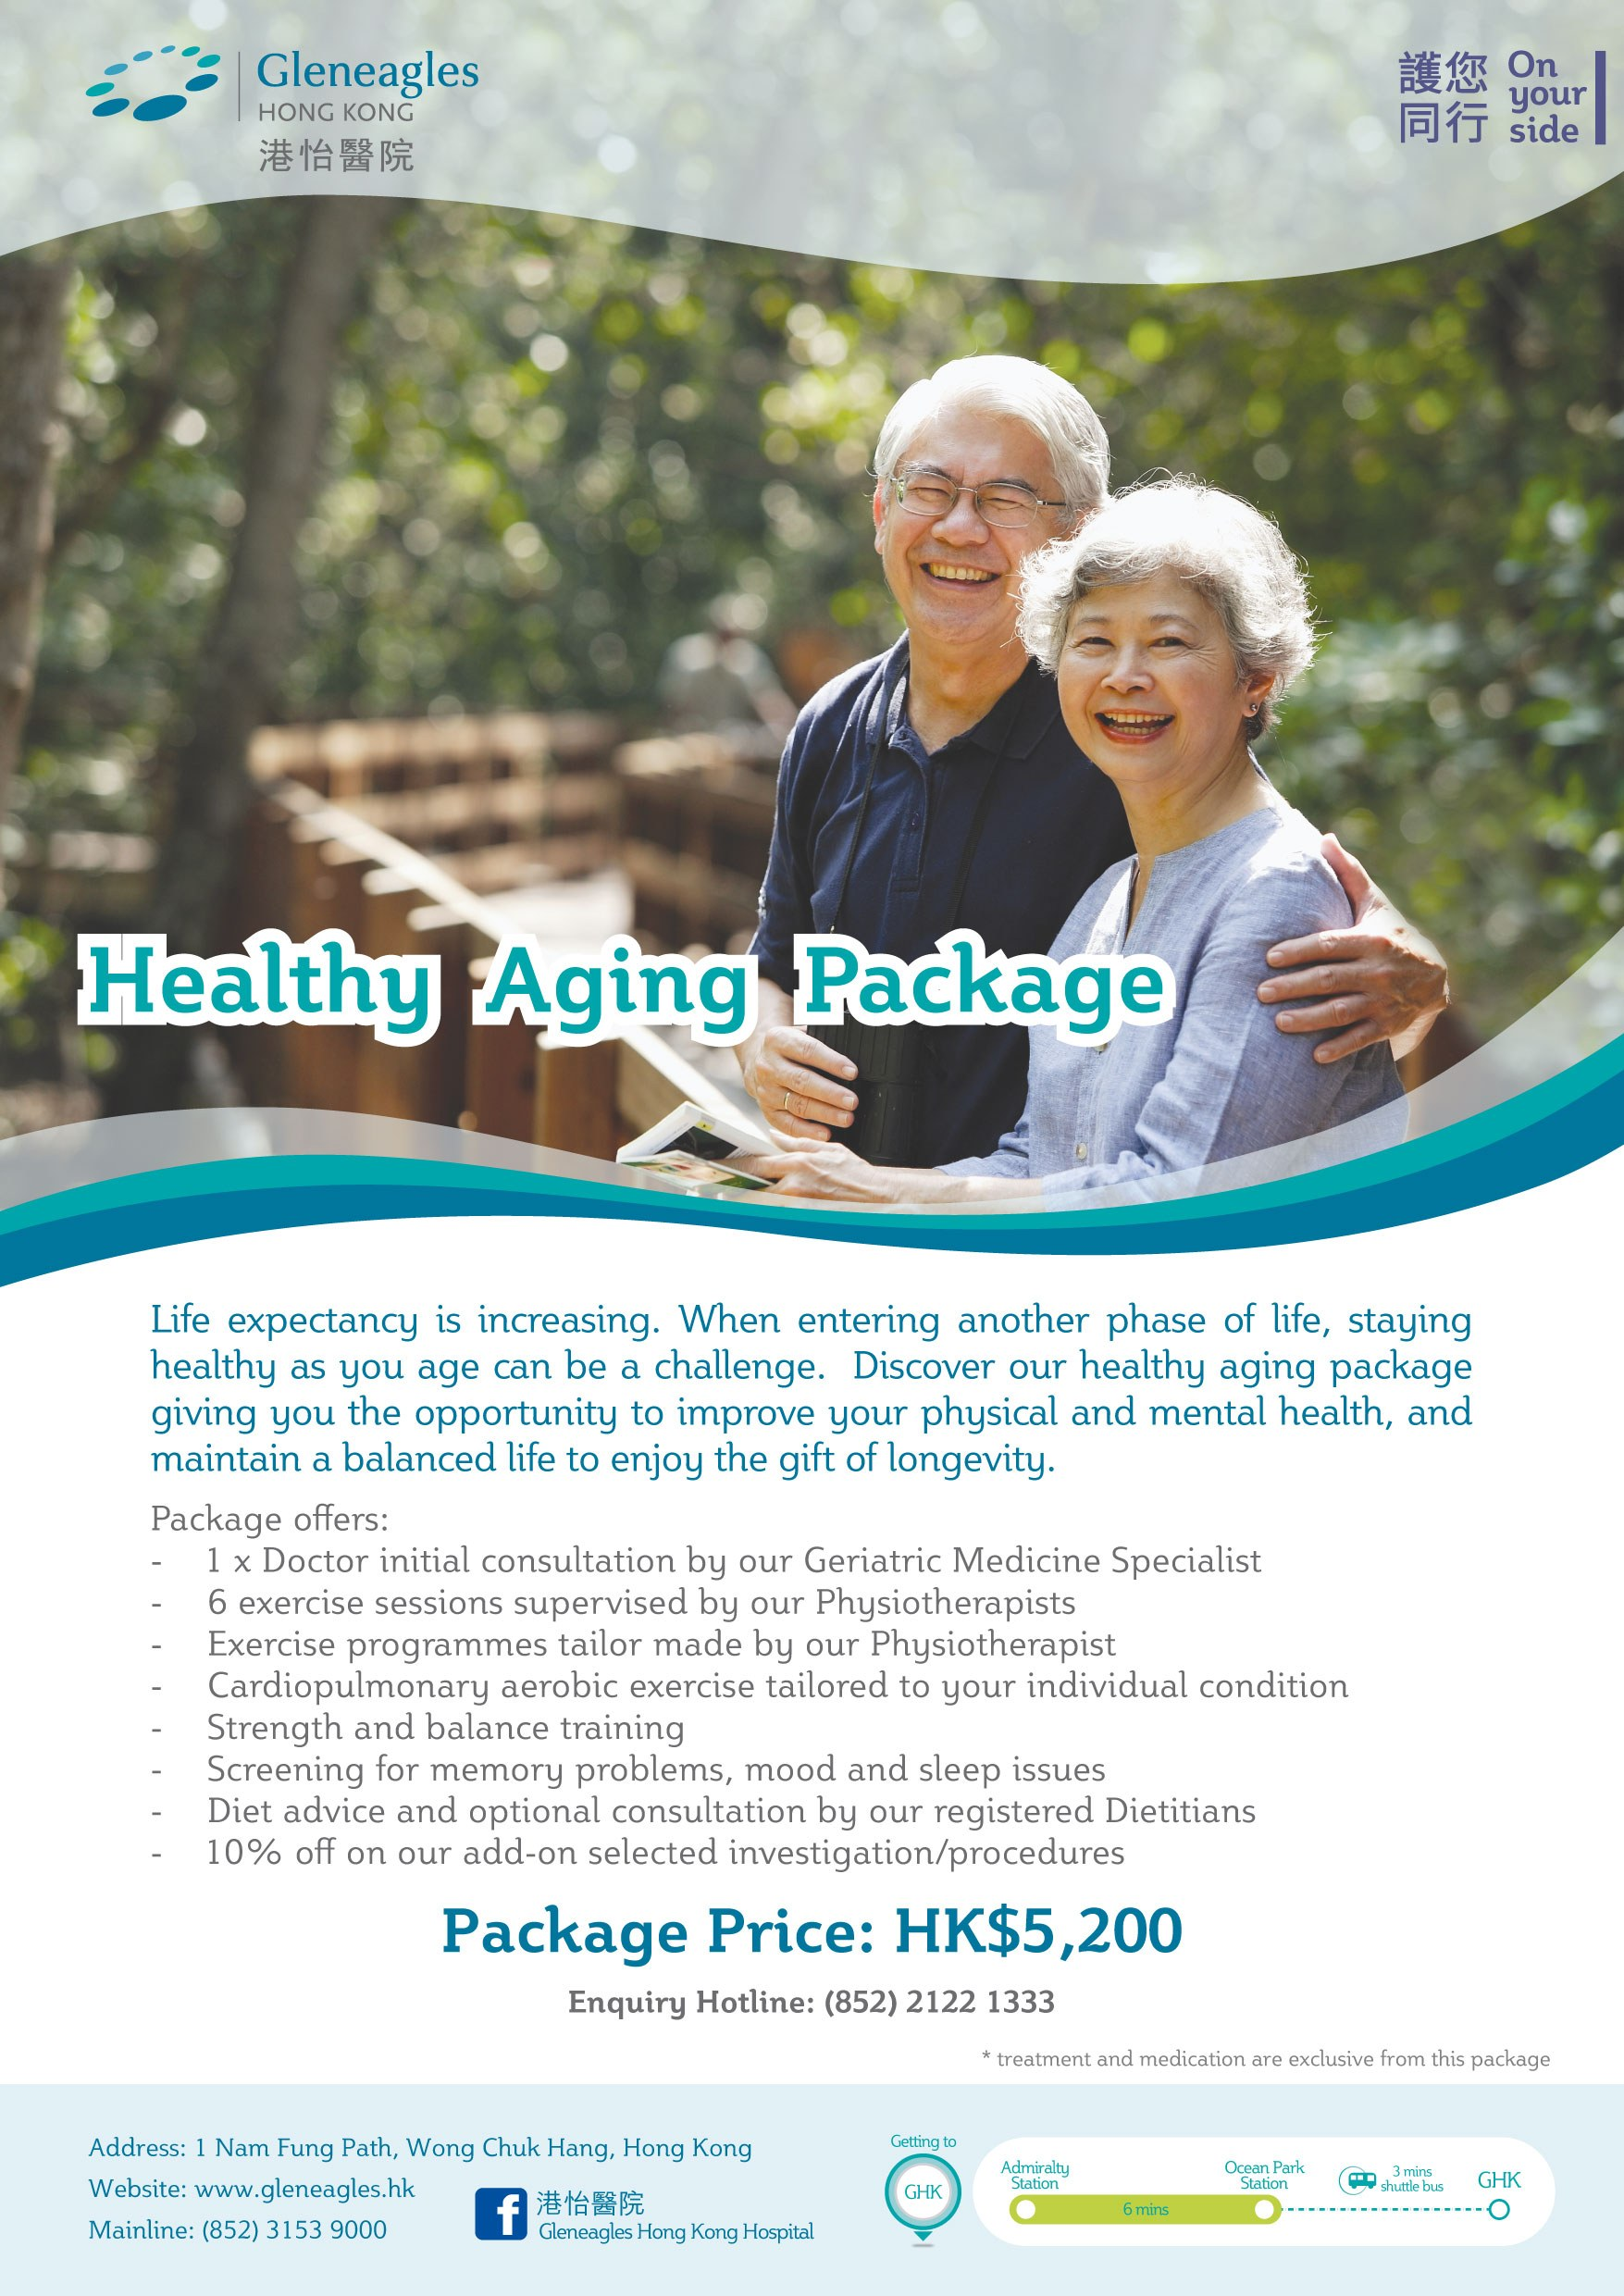 A30246-Gleneagles-Healthy-Aging-Poster_05-04.jpg#asset:32173